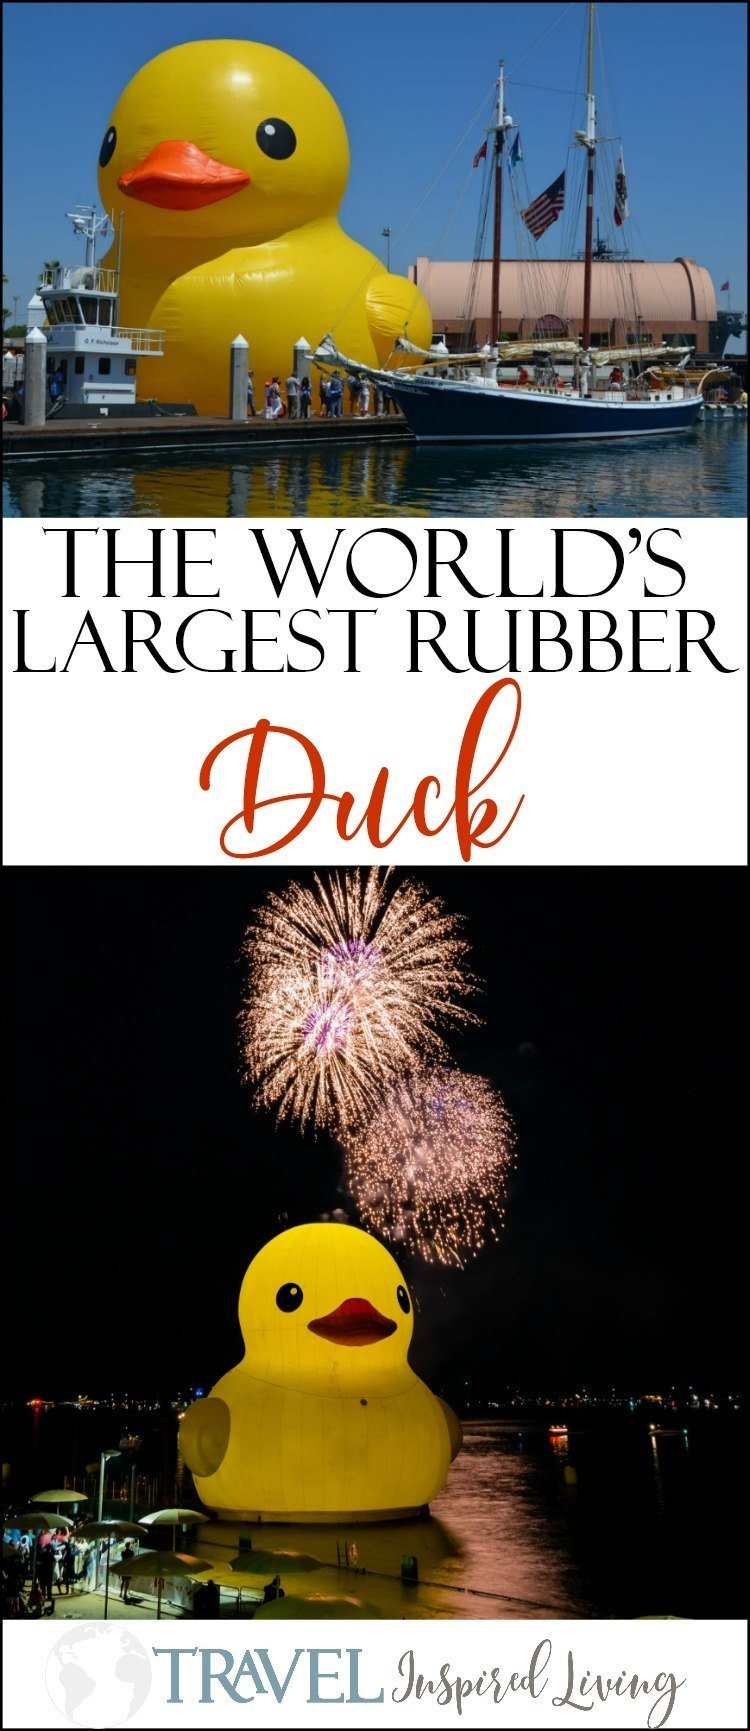 The World's Largest Rubber Duck is headed to Sandusky, Ohio during the Festival of Sail from July 12th-15th, 2018.